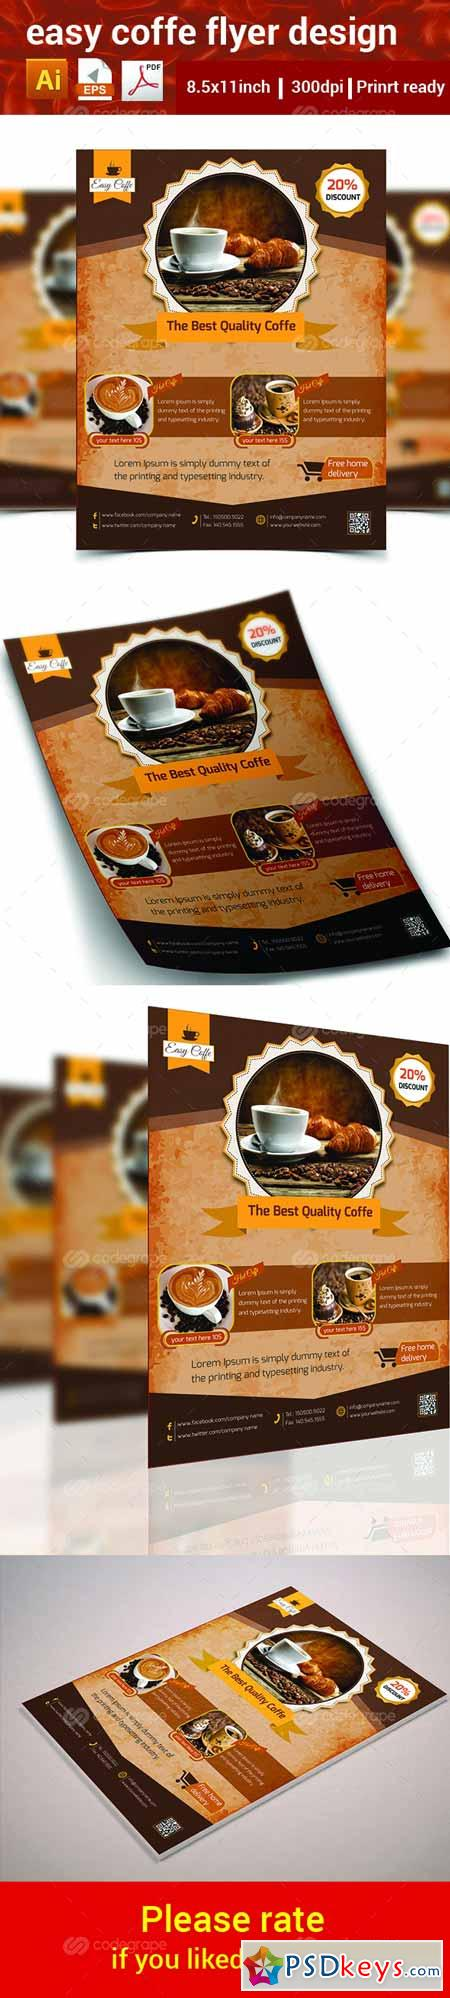 Easy Coffee Flyer 6322